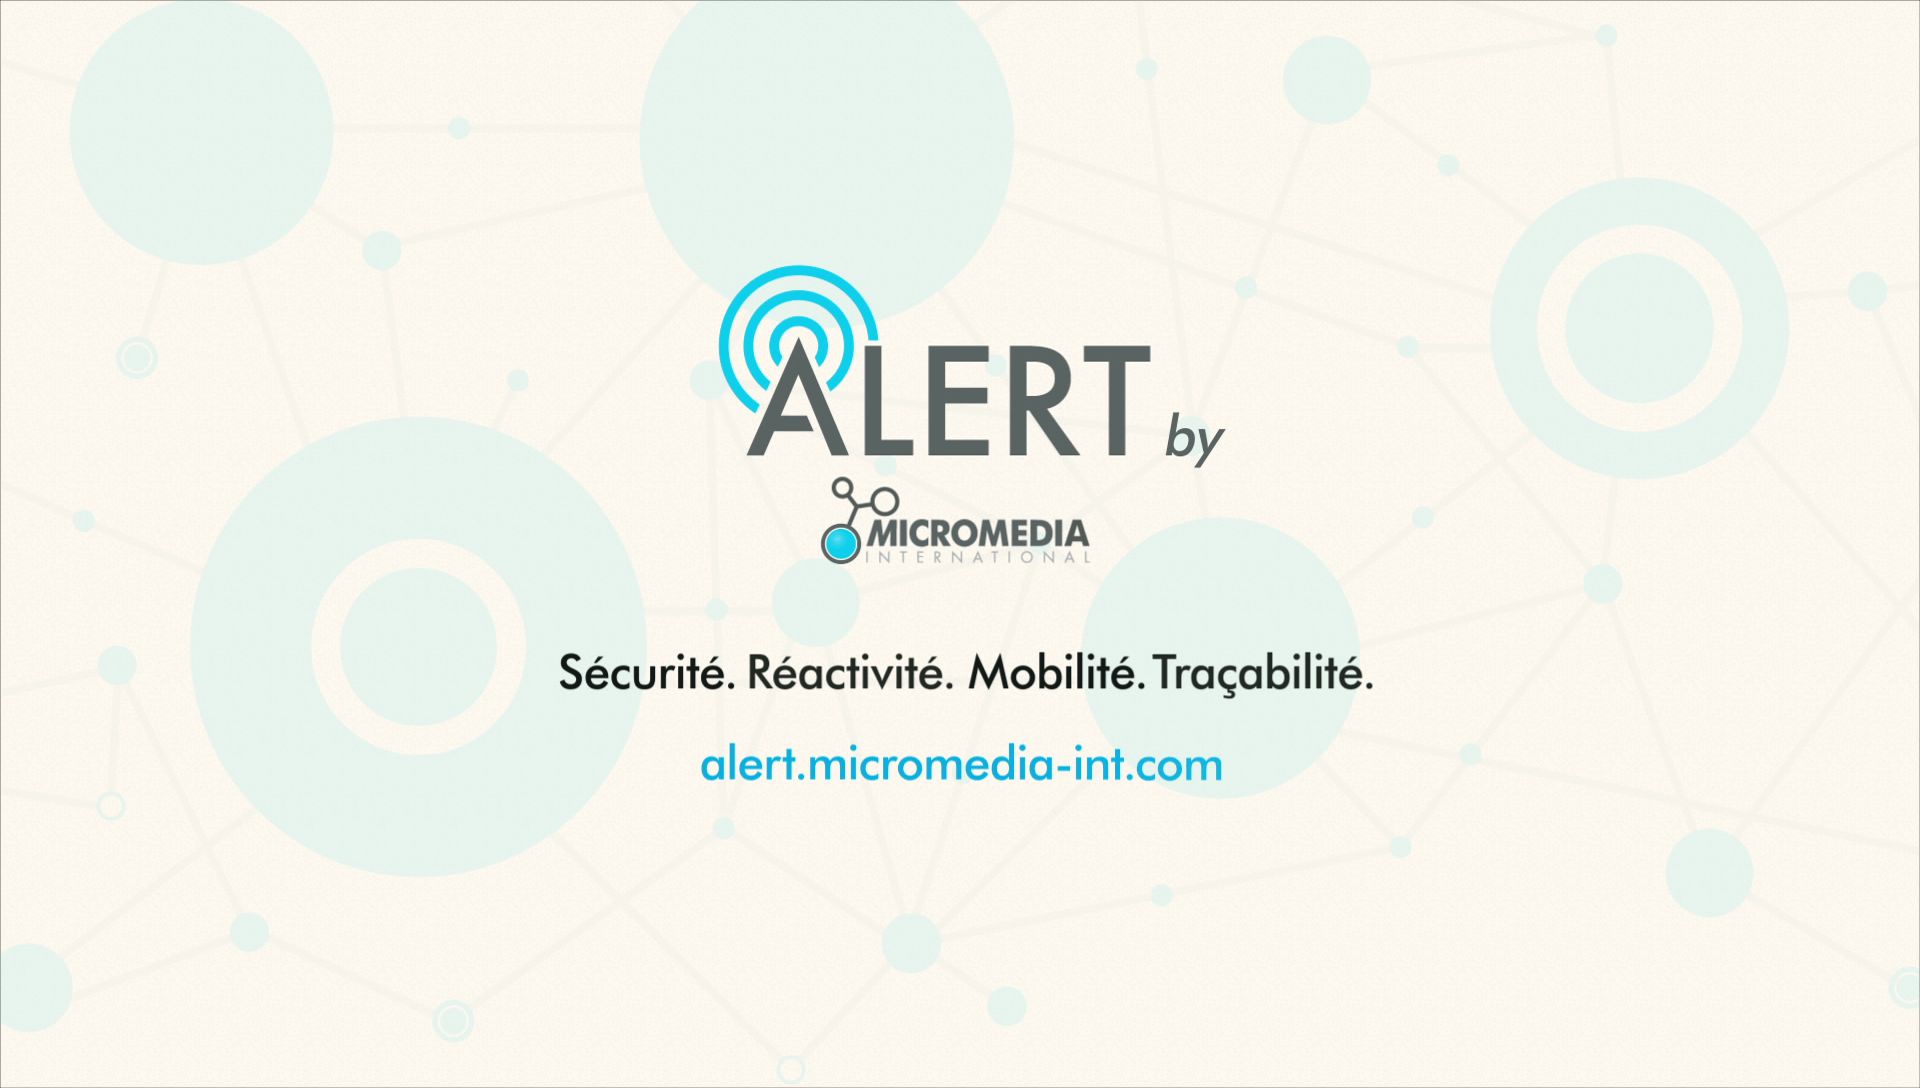 Alert Micromedia - Motion design